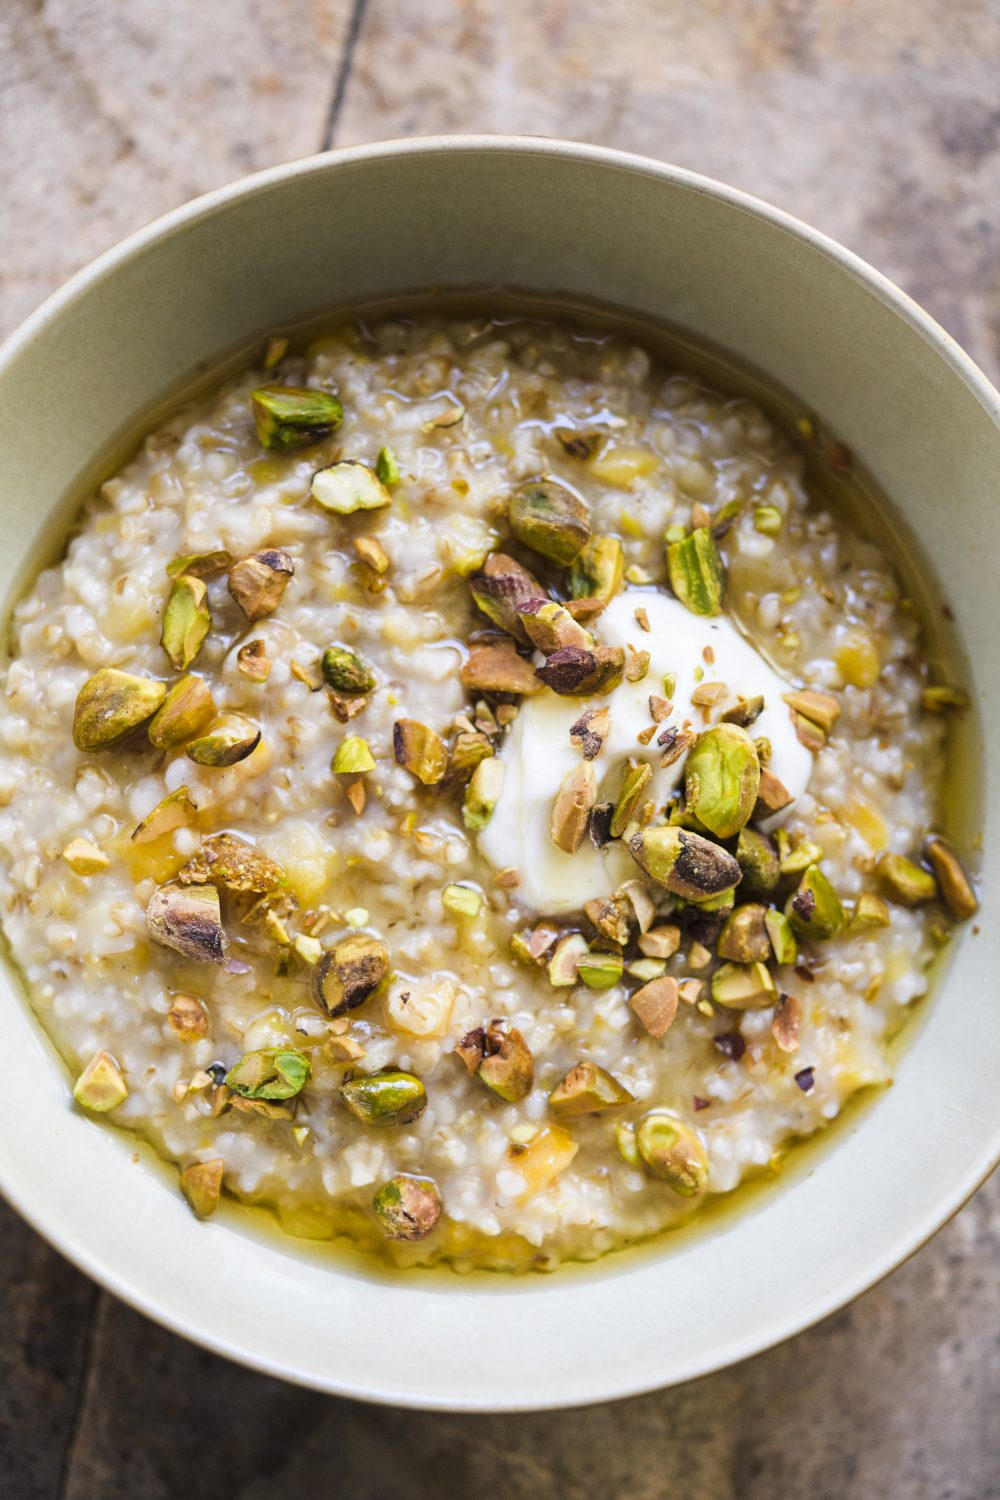 Steel-Cut Oats with Cardamom, Apricot and Pistachio (Durotherm)